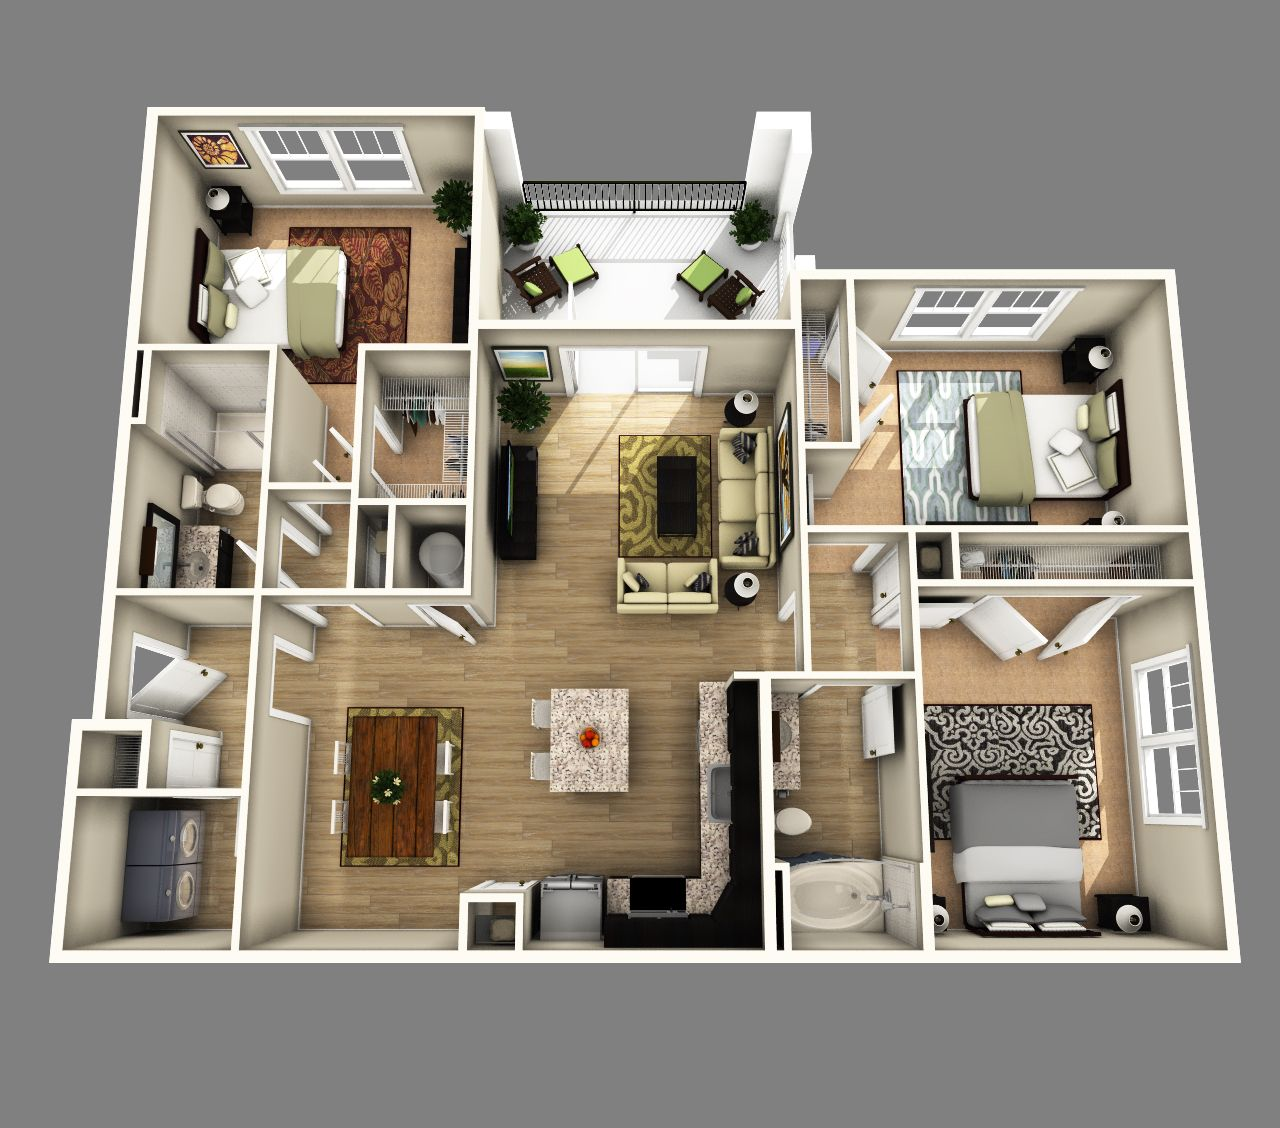 3d open floor plan 3 bedroom 2 bathroom google search 3 bedroom 3 bath house plans